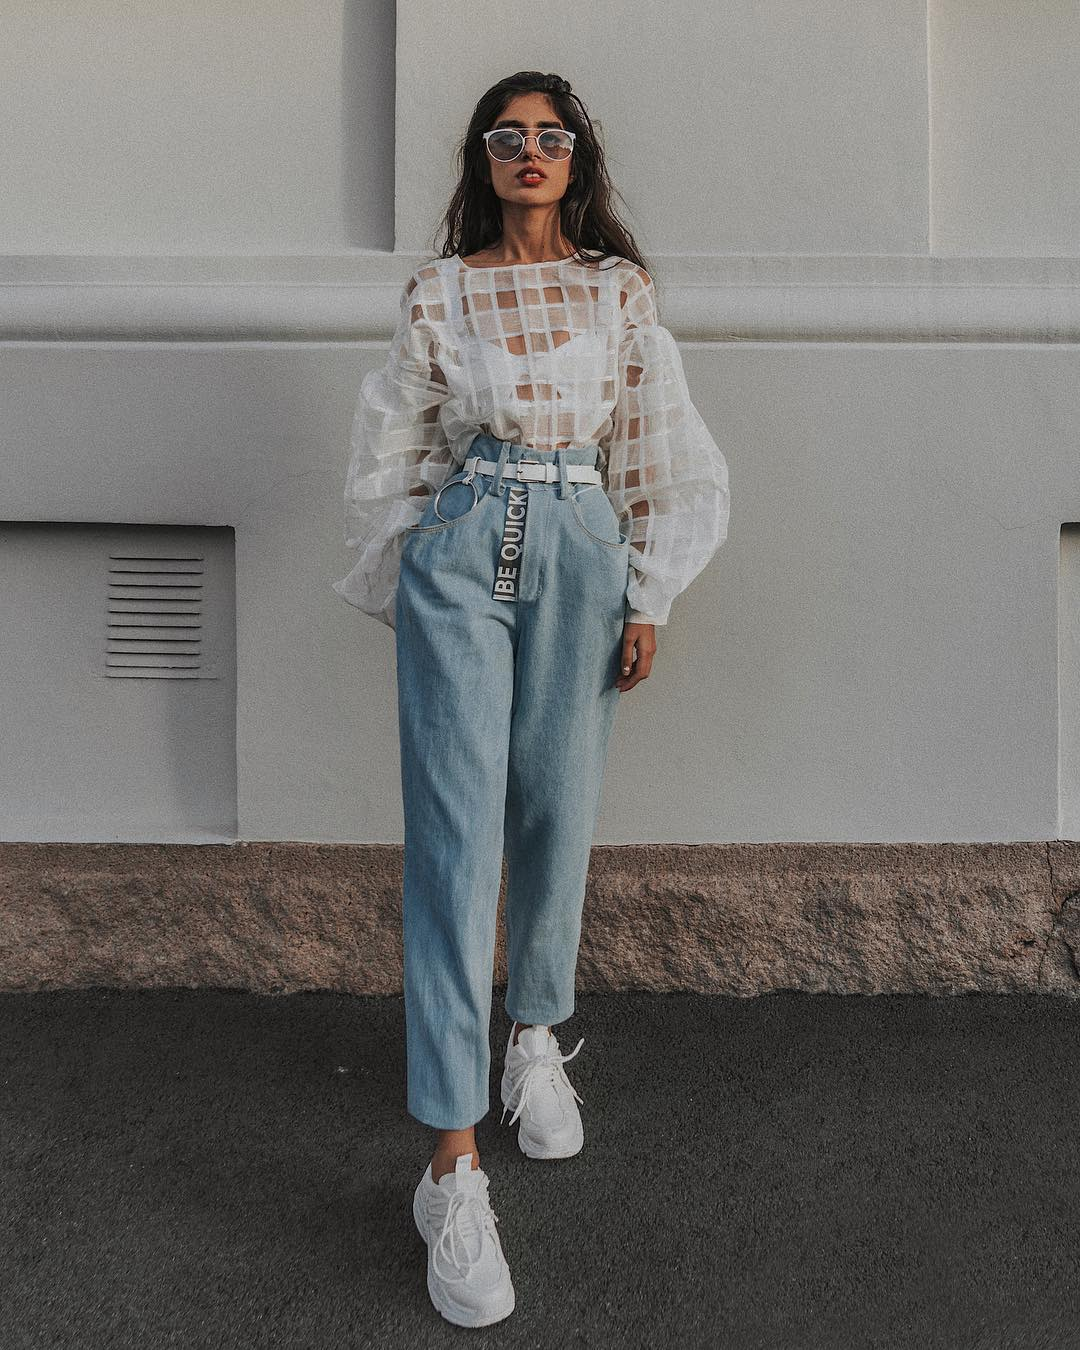 White Sheer Top And High-Rise Light Blue Regular Jeans: Feminine Normcore Trend 2020